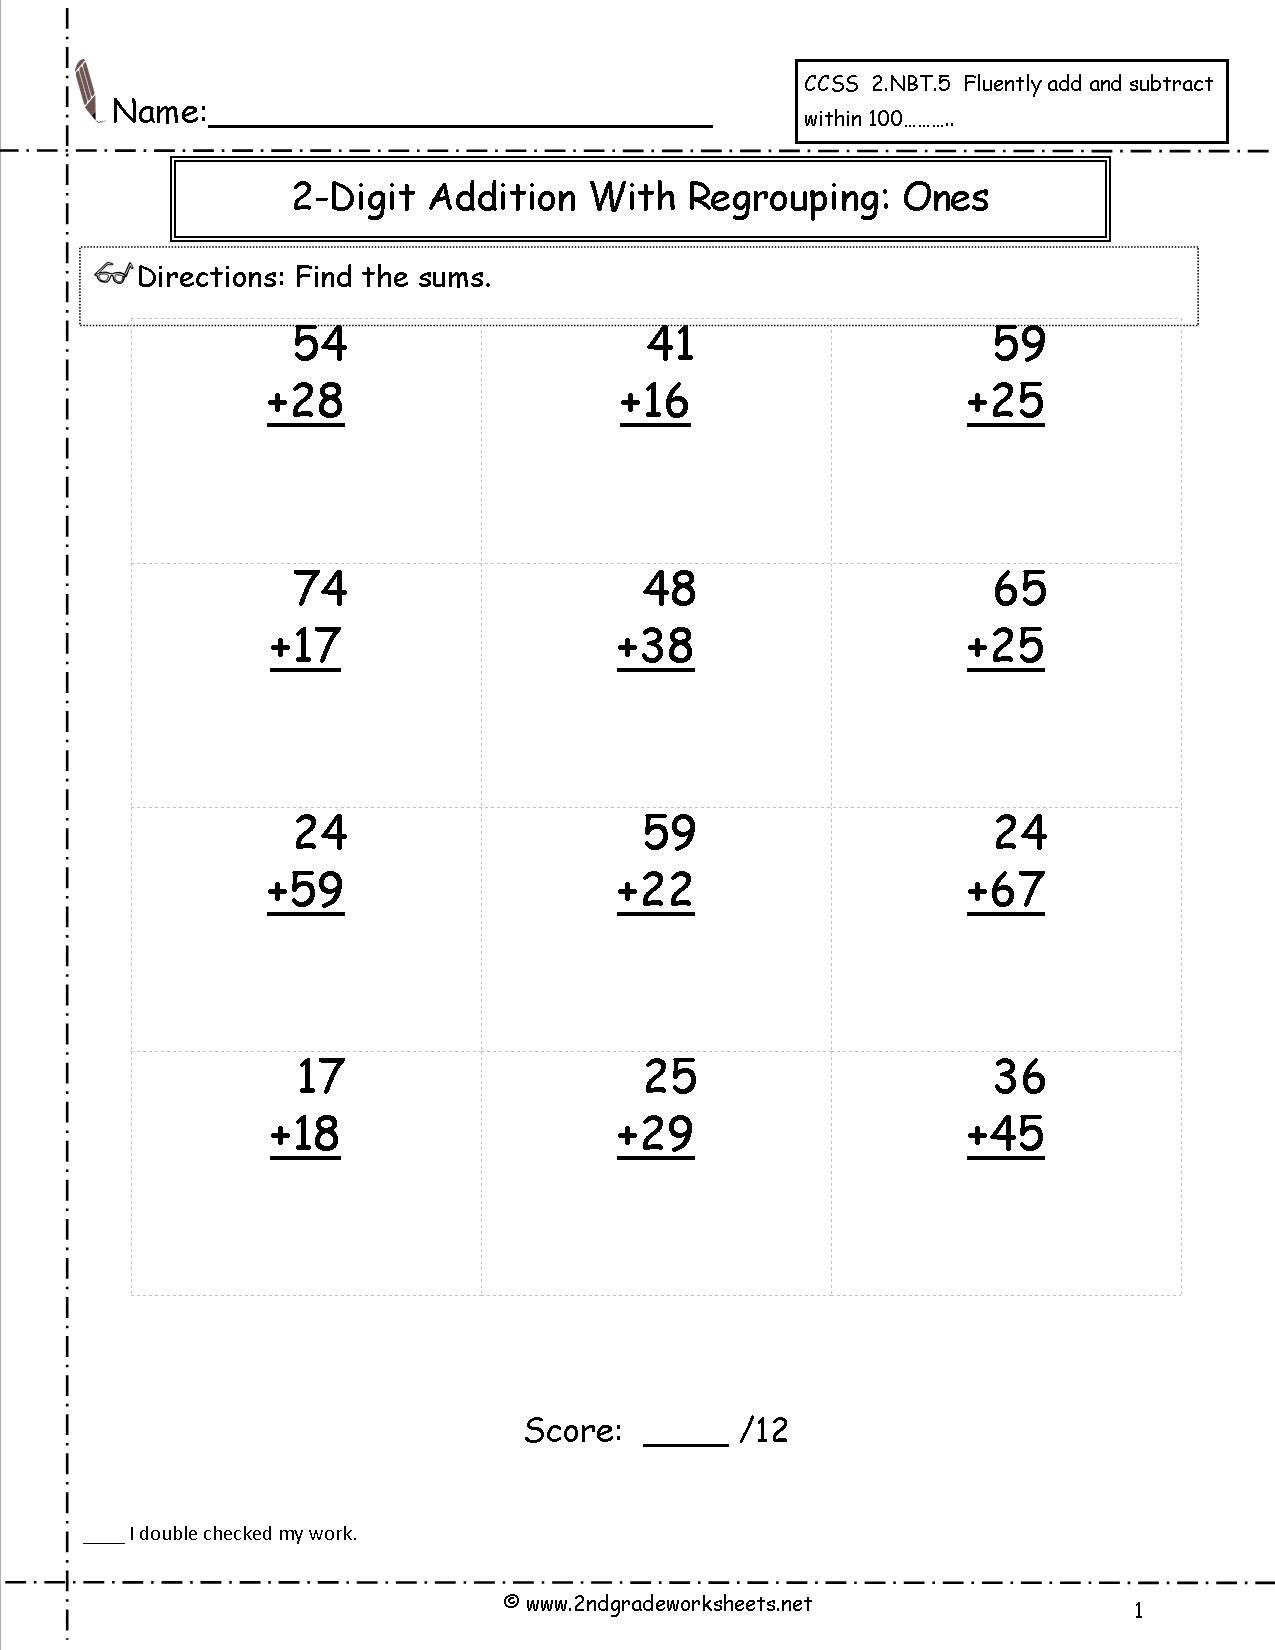 two digit addition with regrouping worksheet satta pinterest worksheets and math. Black Bedroom Furniture Sets. Home Design Ideas